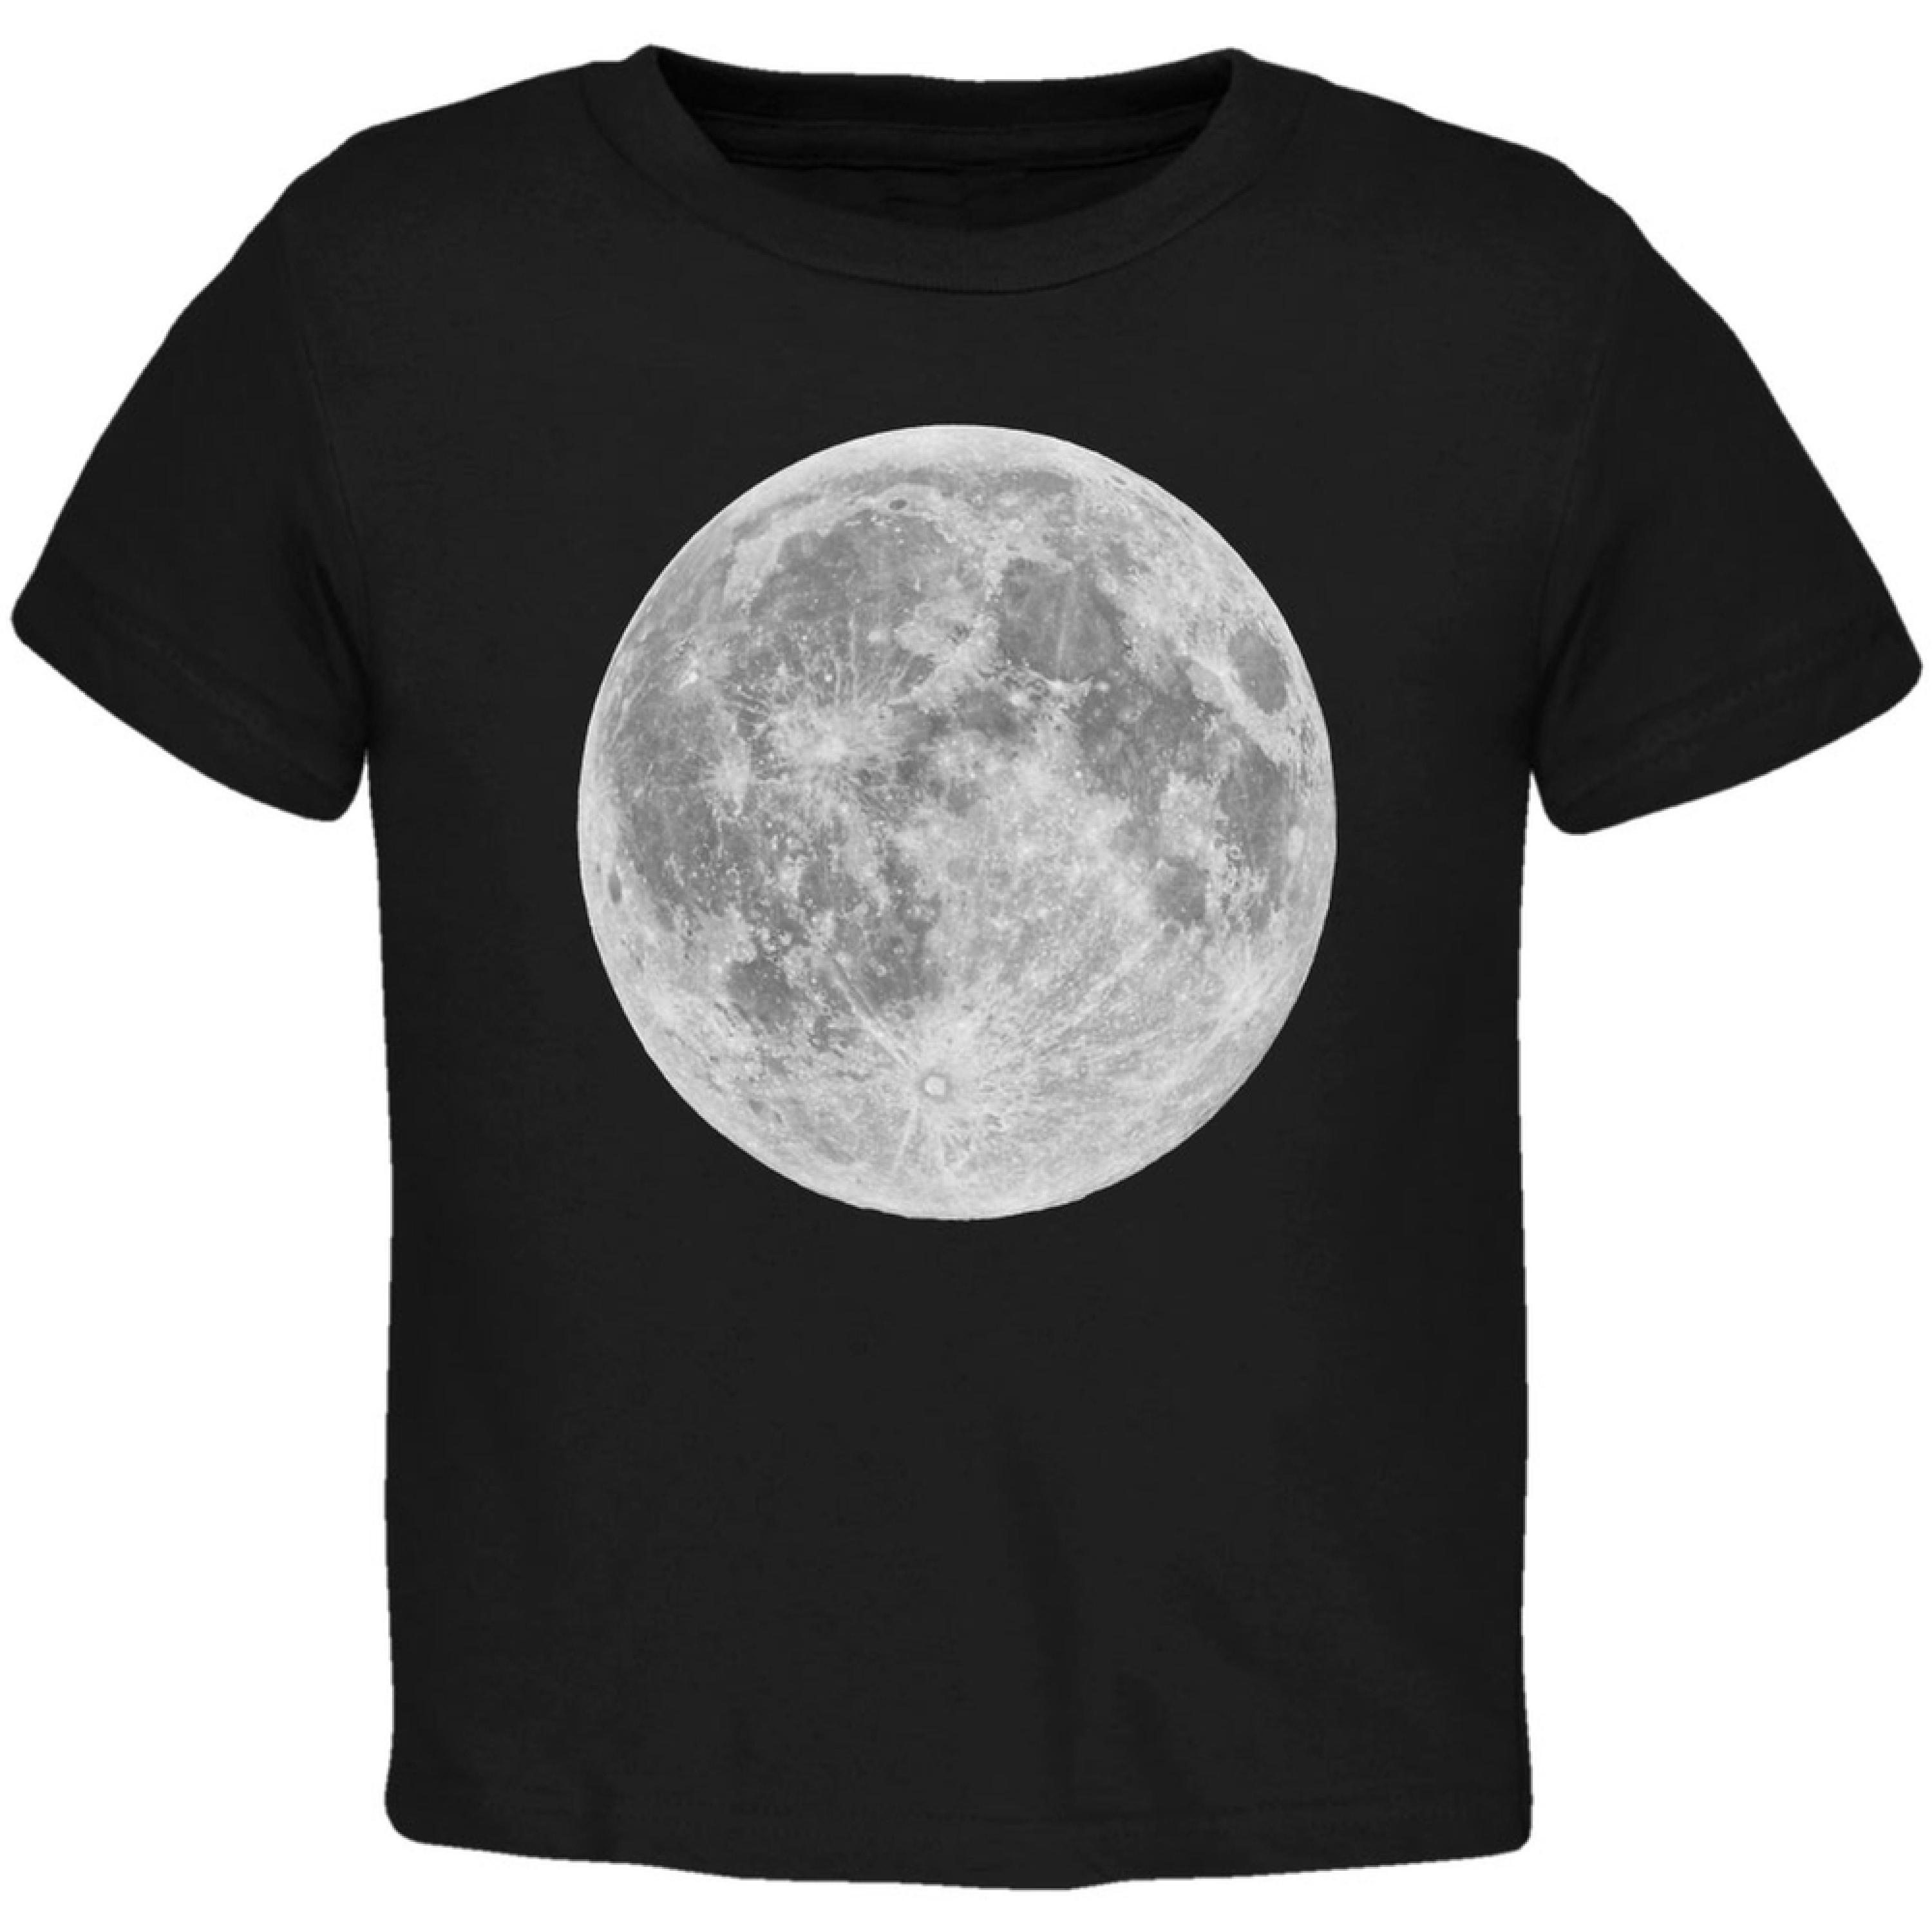 Earth's Moon Black Toddler T-Shirt